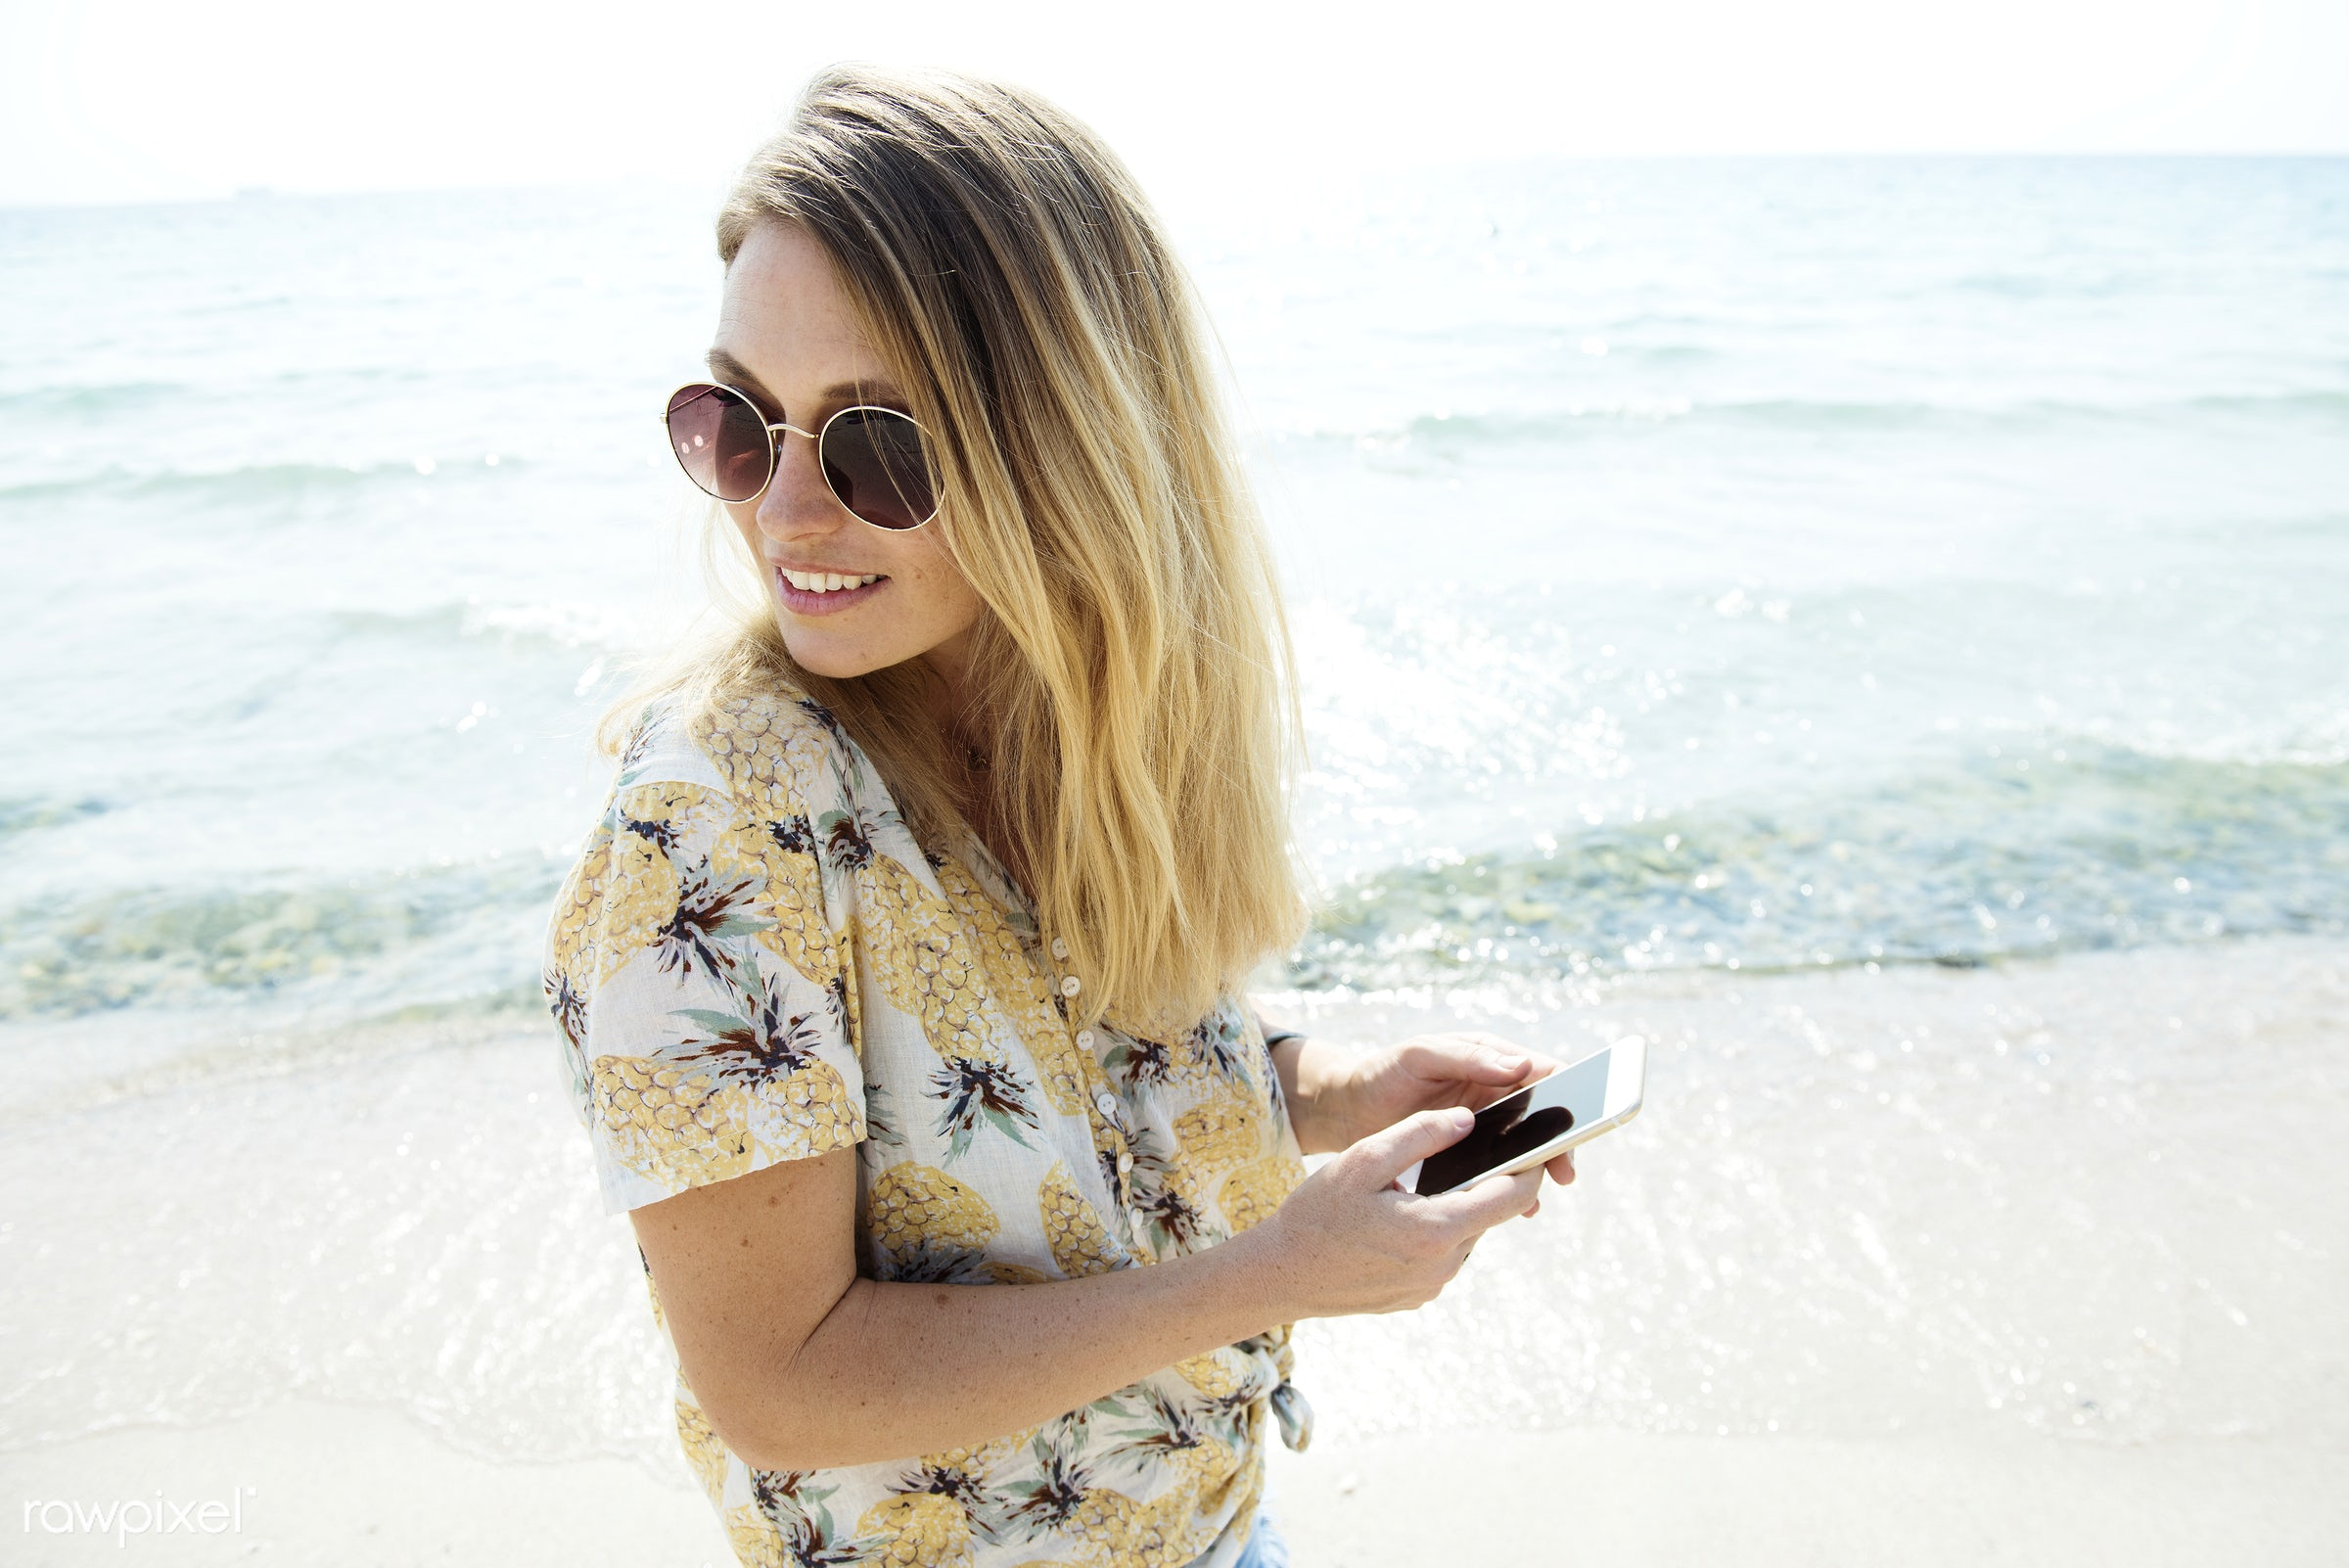 shore, freedom, tranquil scene, ocean, beach, travel, recreation, girl, nature, woman, mobile phone, smiling, connection,...